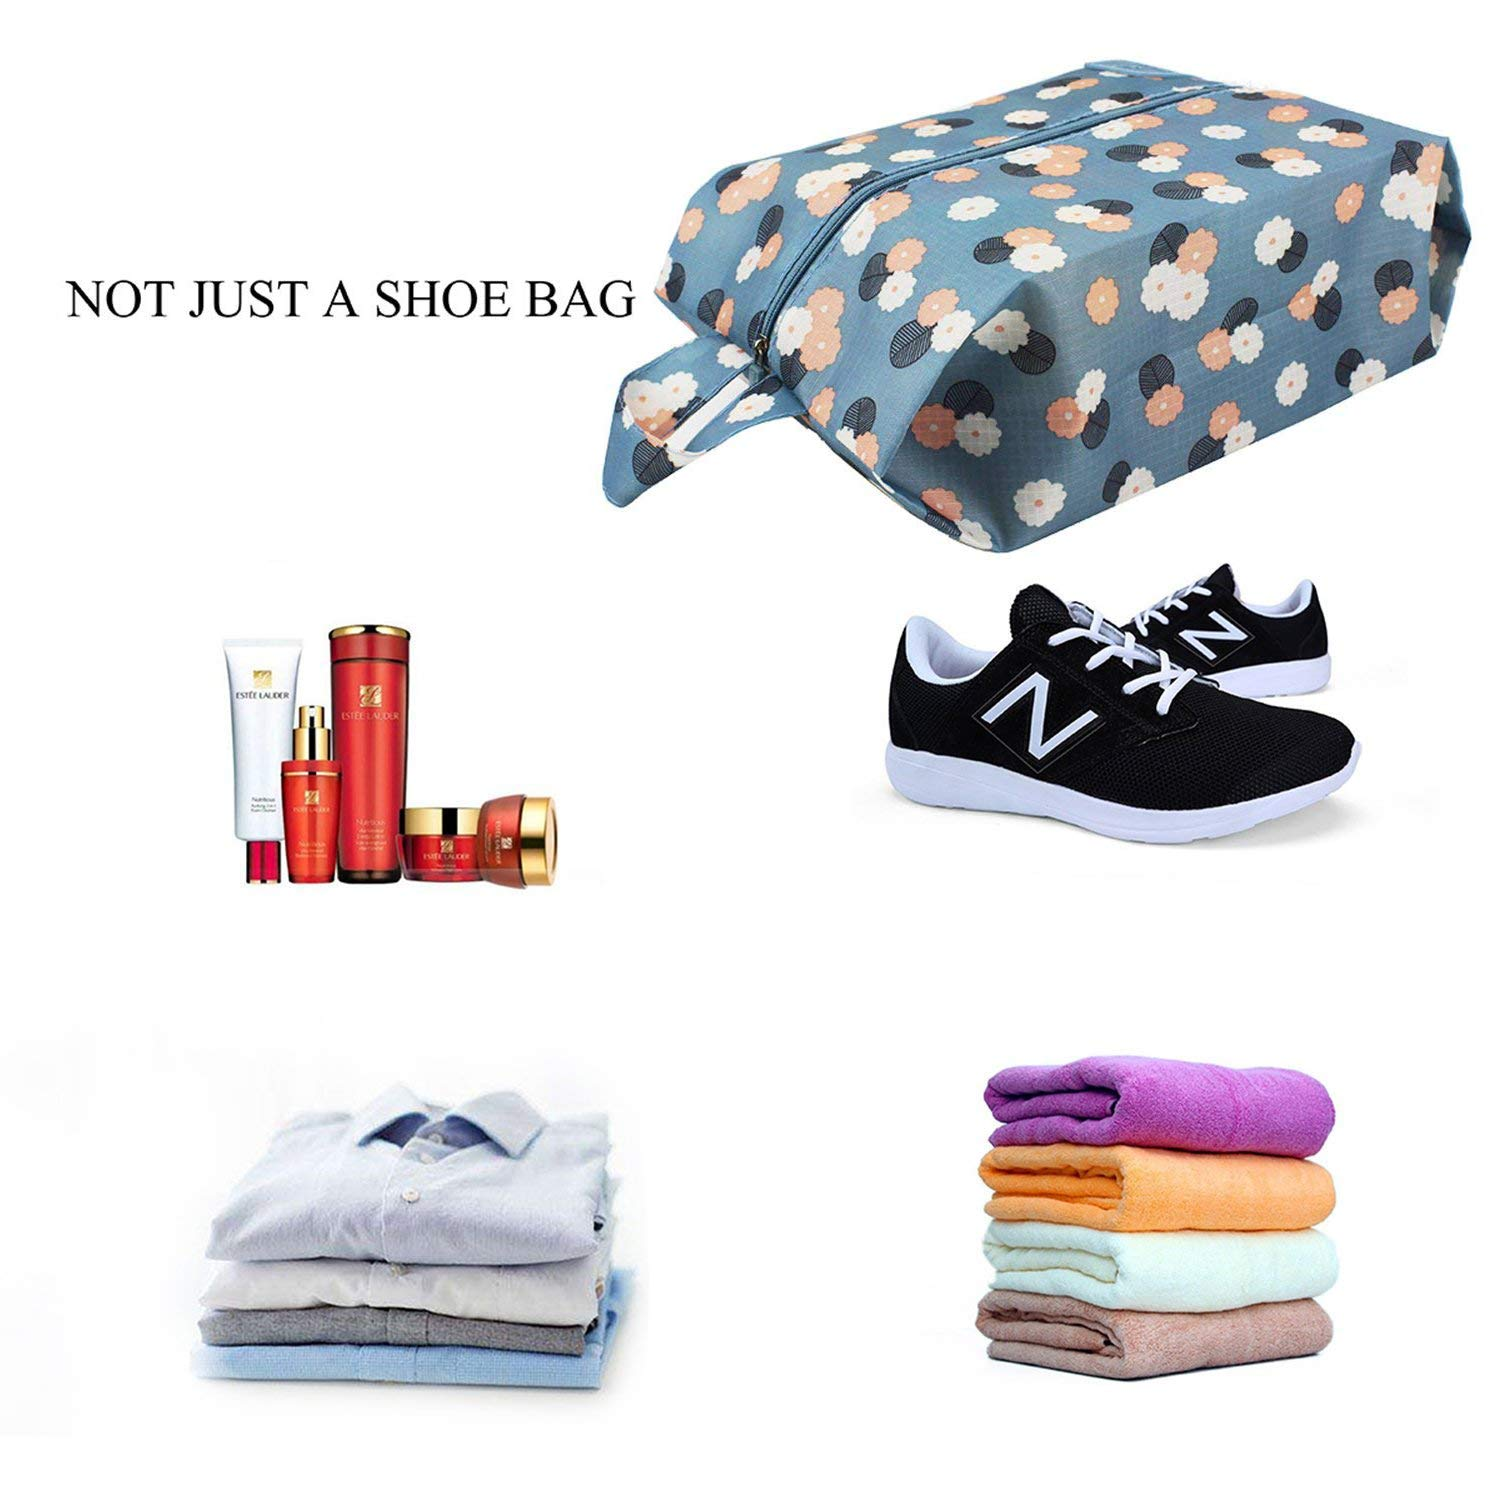 fdcc1a04ecb4 Amazon.com: Xelparuc 5-Pack Portable Travel Shoe Bags Dust-proof ...